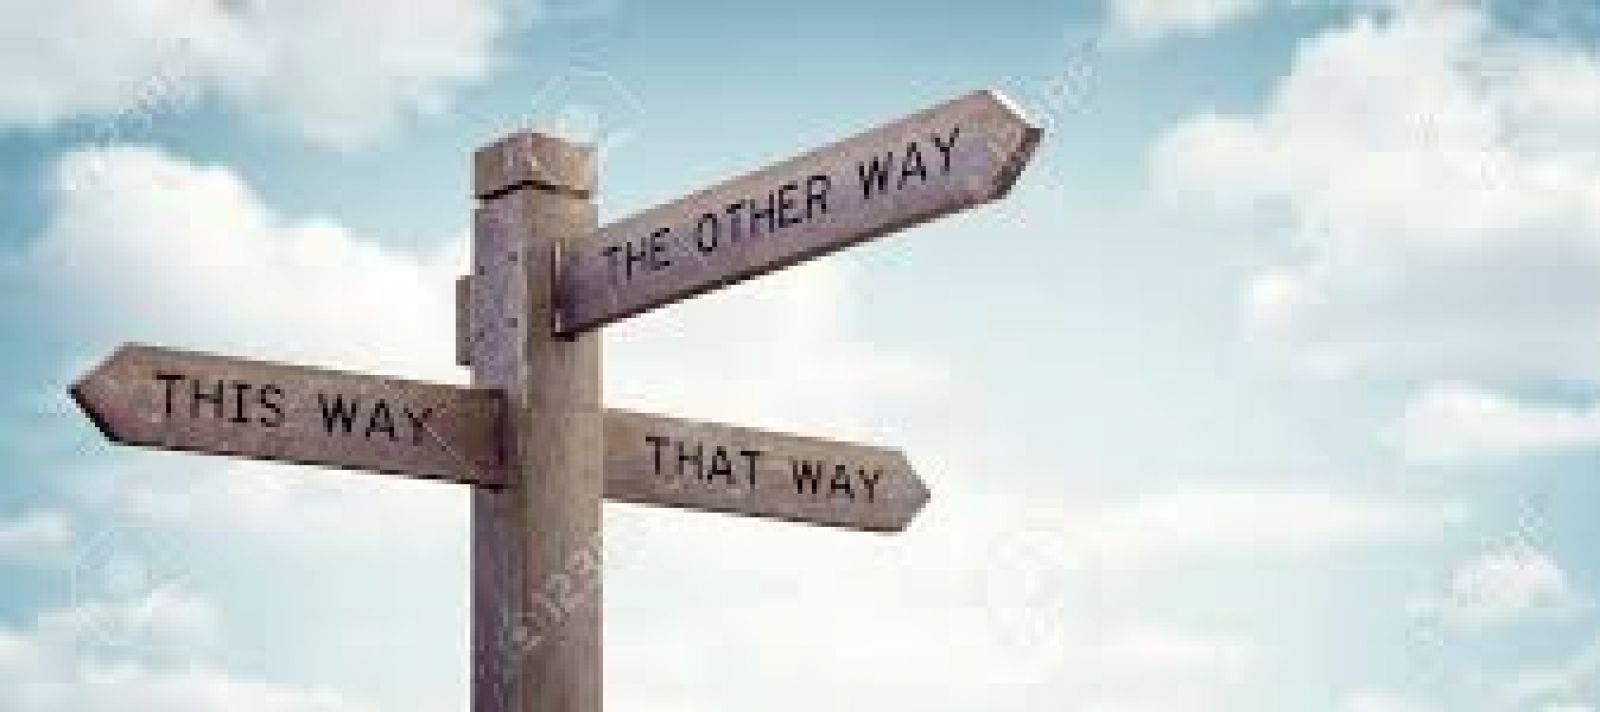 The Other Way